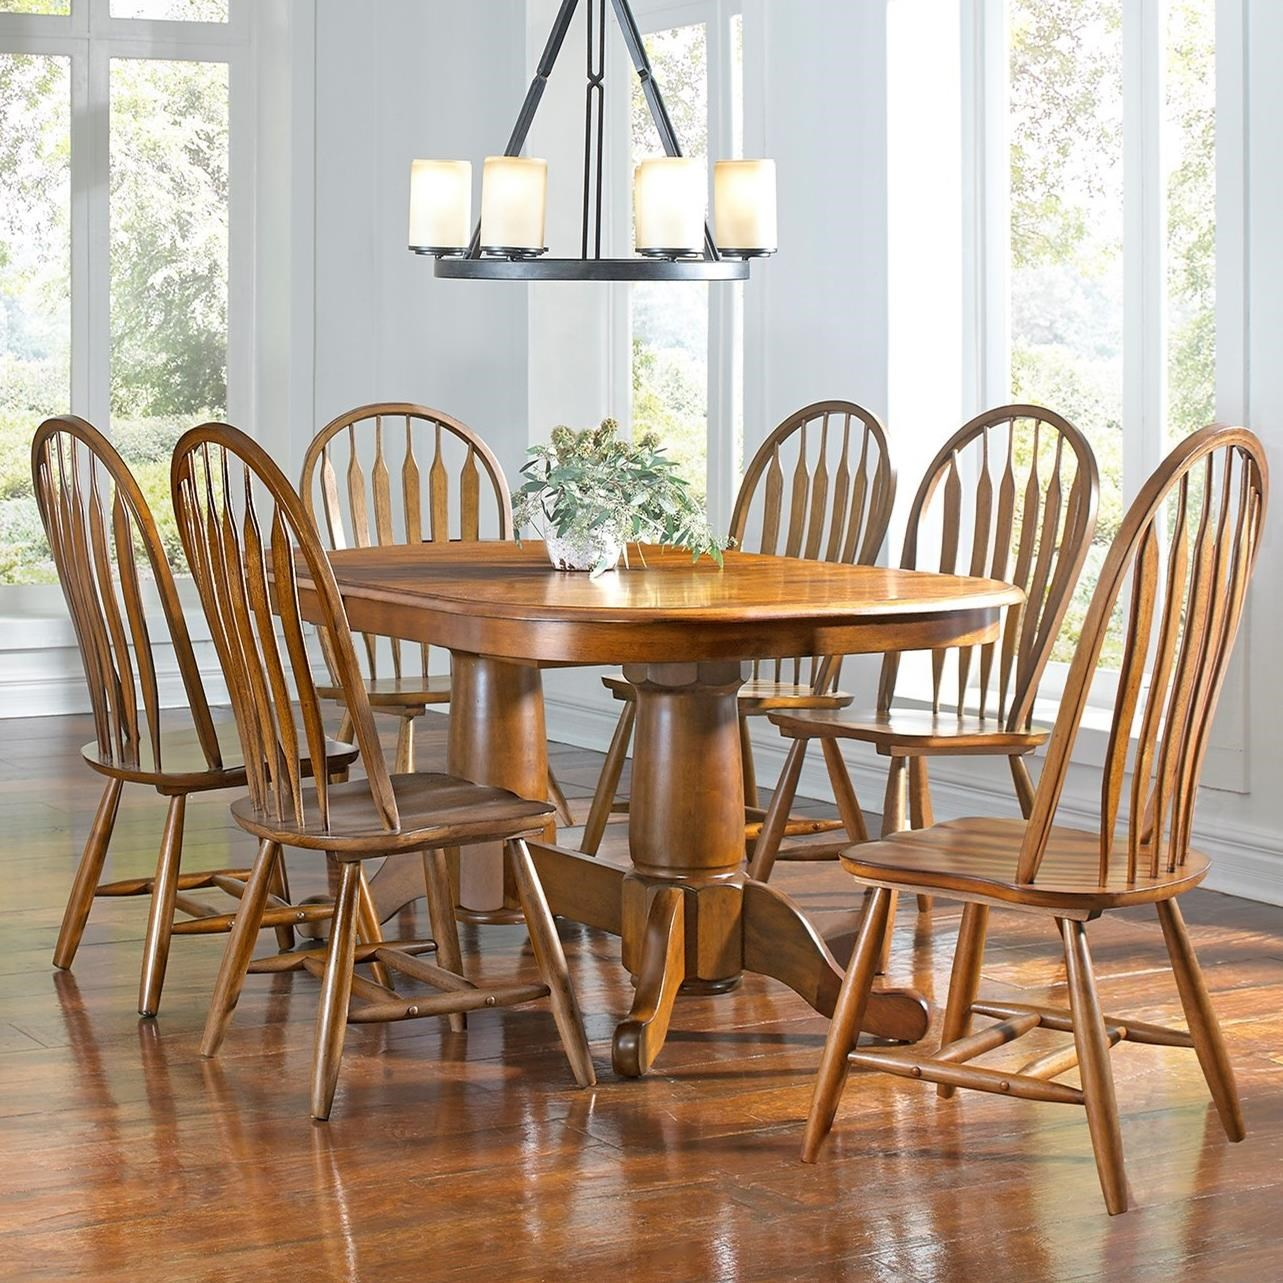 Aamerica Roanoke 7 Piece Butterfly Ext Trestle Table Arrowback Chair Set Wayside Furniture